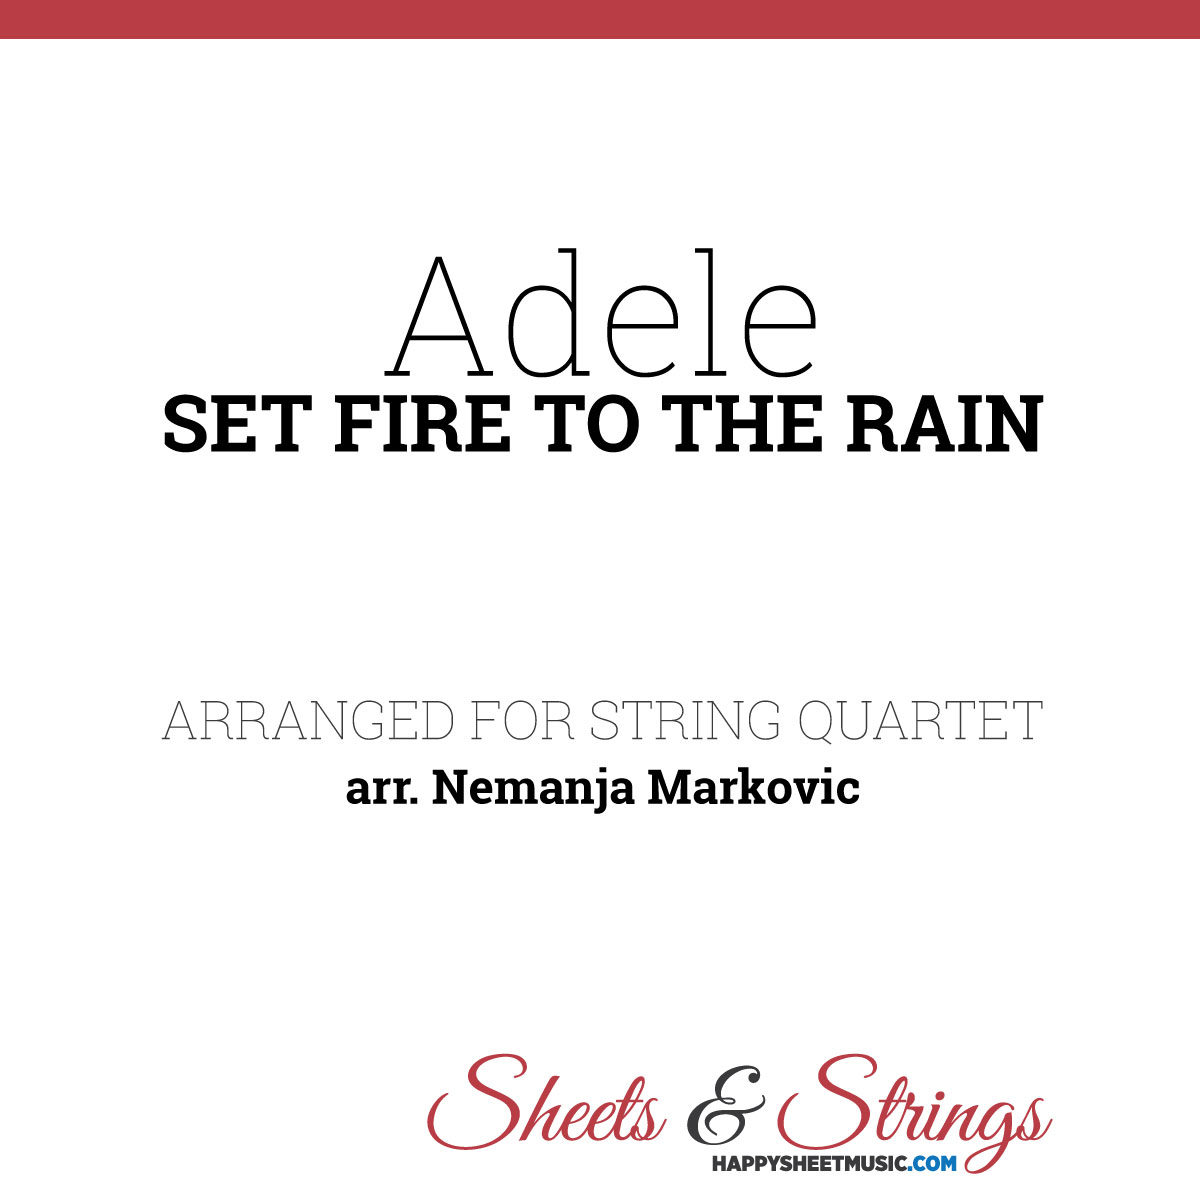 Adele - Set Fire To The Rain - Sheet Music for String Quartet - Music Arrangement for String Quartet